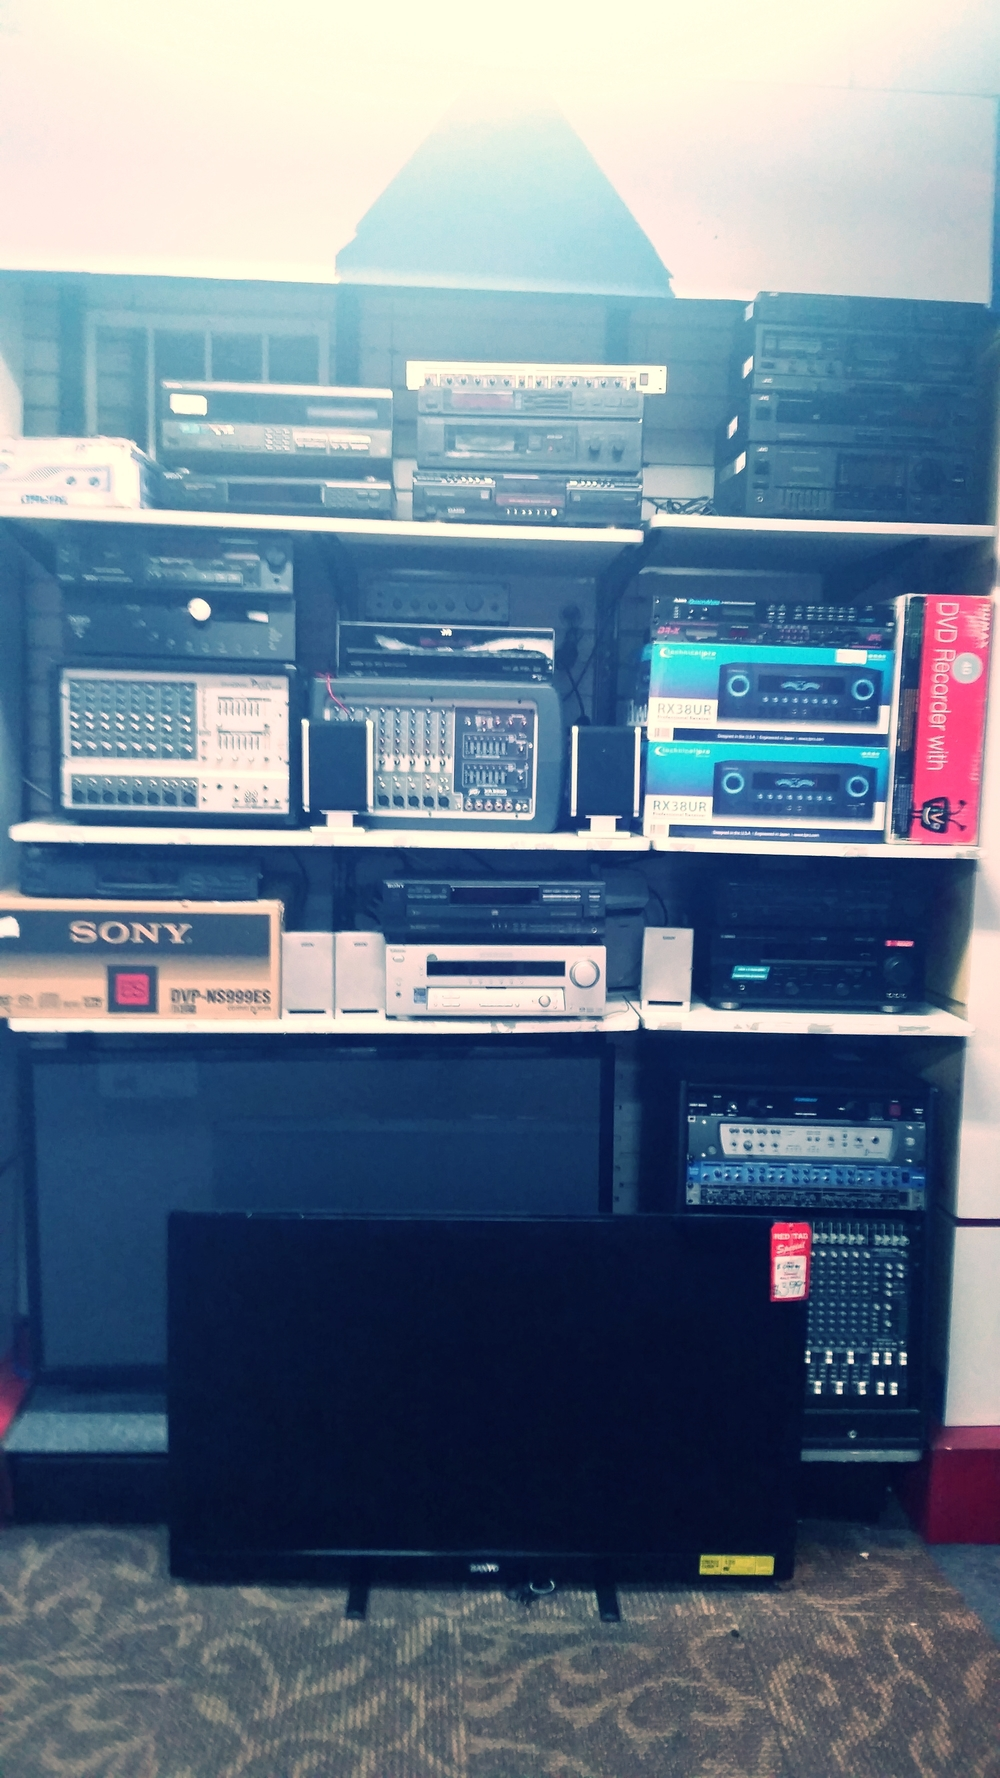 We are a one stop shop for audio equipment. Everything ranging from receivers and speakers, to a full studio set-up